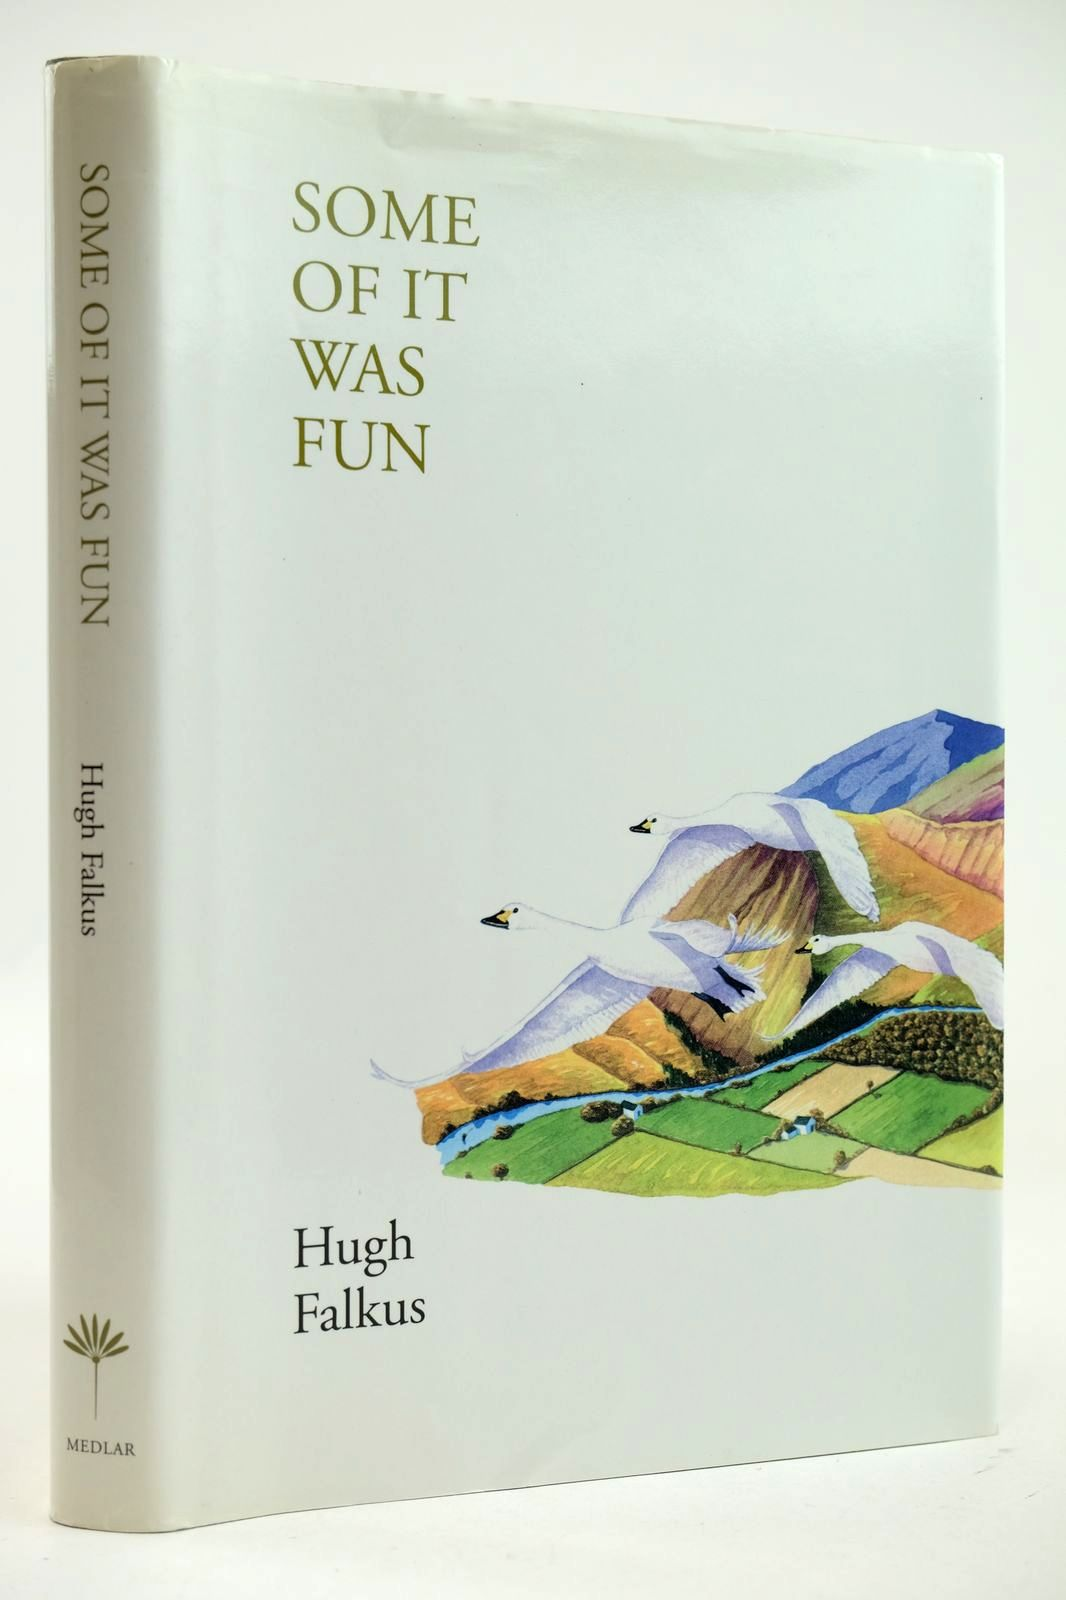 Photo of SOME OF IT WAS FUN written by Falkus, Hugh illustrated by Adkins, Scott published by The Medlar Press (STOCK CODE: 2132675)  for sale by Stella & Rose's Books